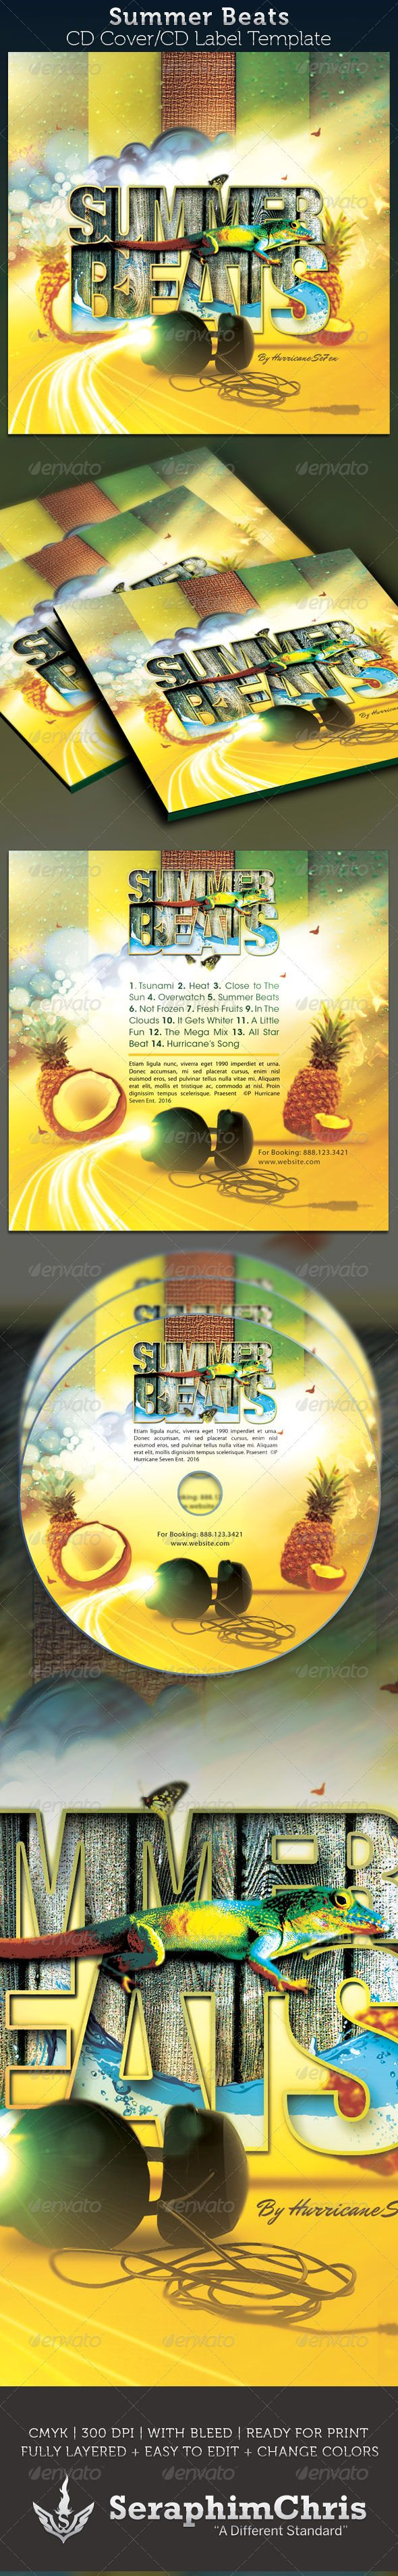 Summer Beats CD Artwork Template CD & DVD Artwork Print Templates